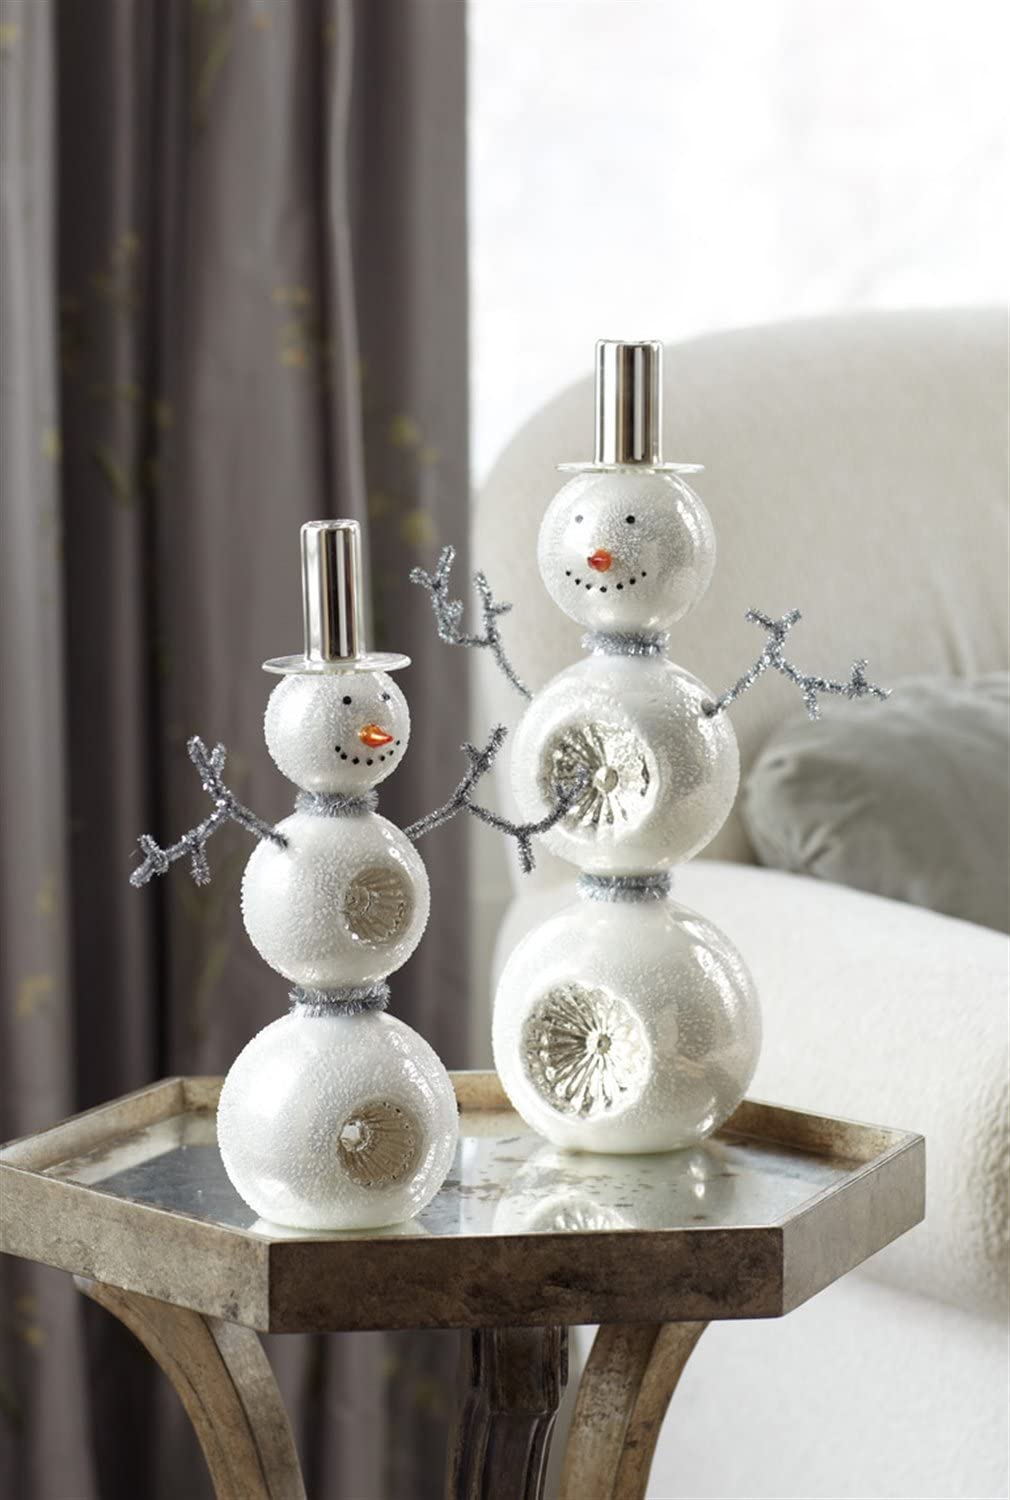 Set of 2 Glass Snowman Table Piece Figures Accented with Tinsel Arms 13